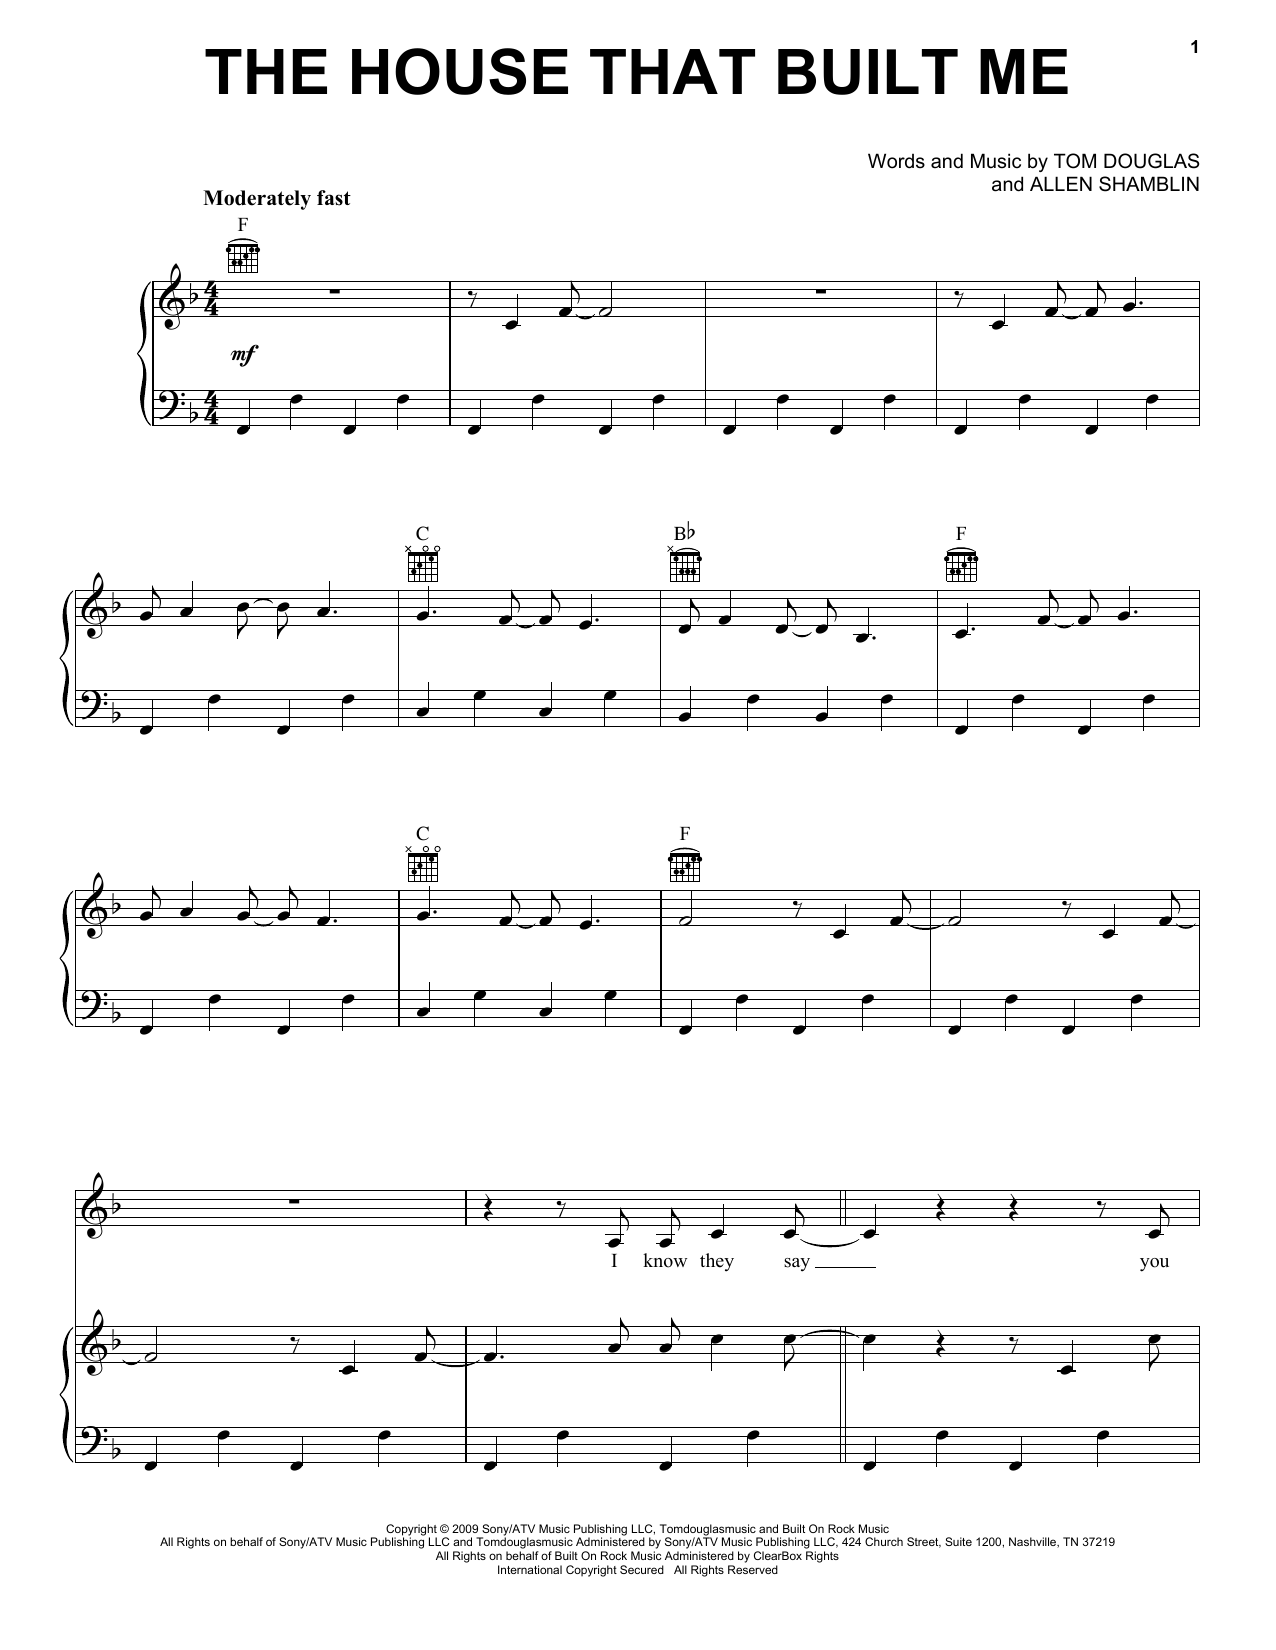 The House That Built Me sheet music